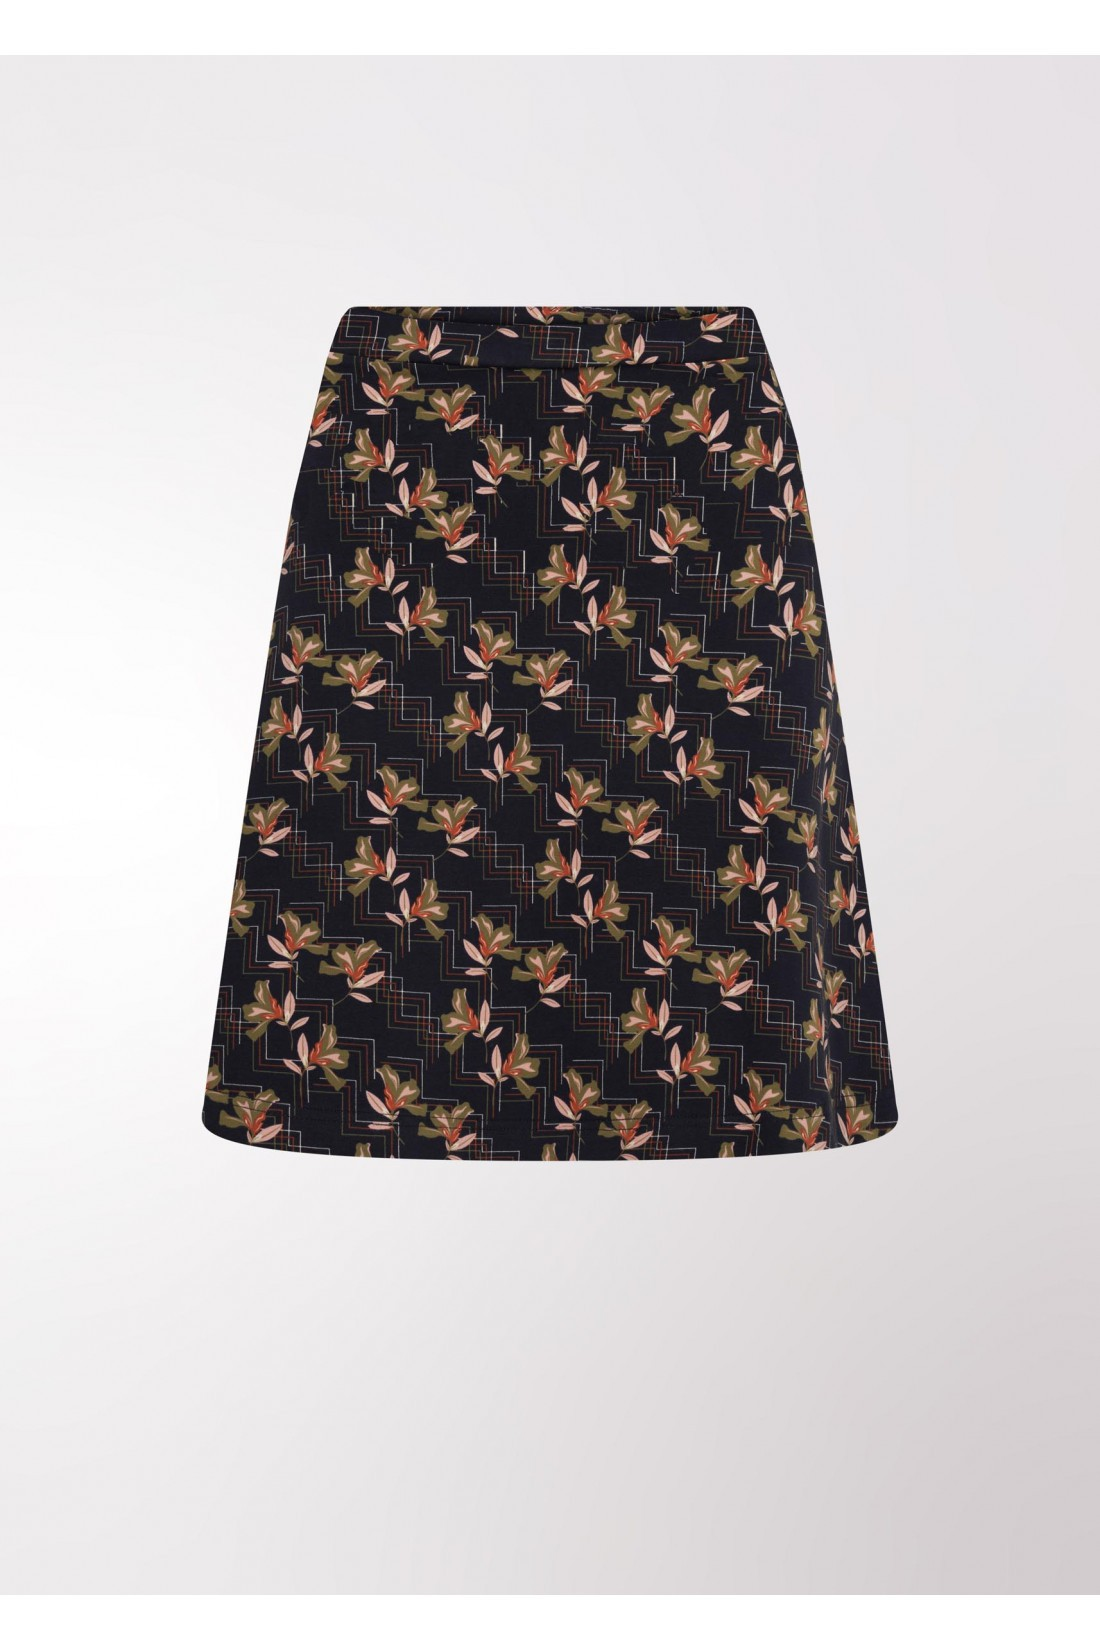 printed blue line skirt 4FunkyFlavours, The Rock